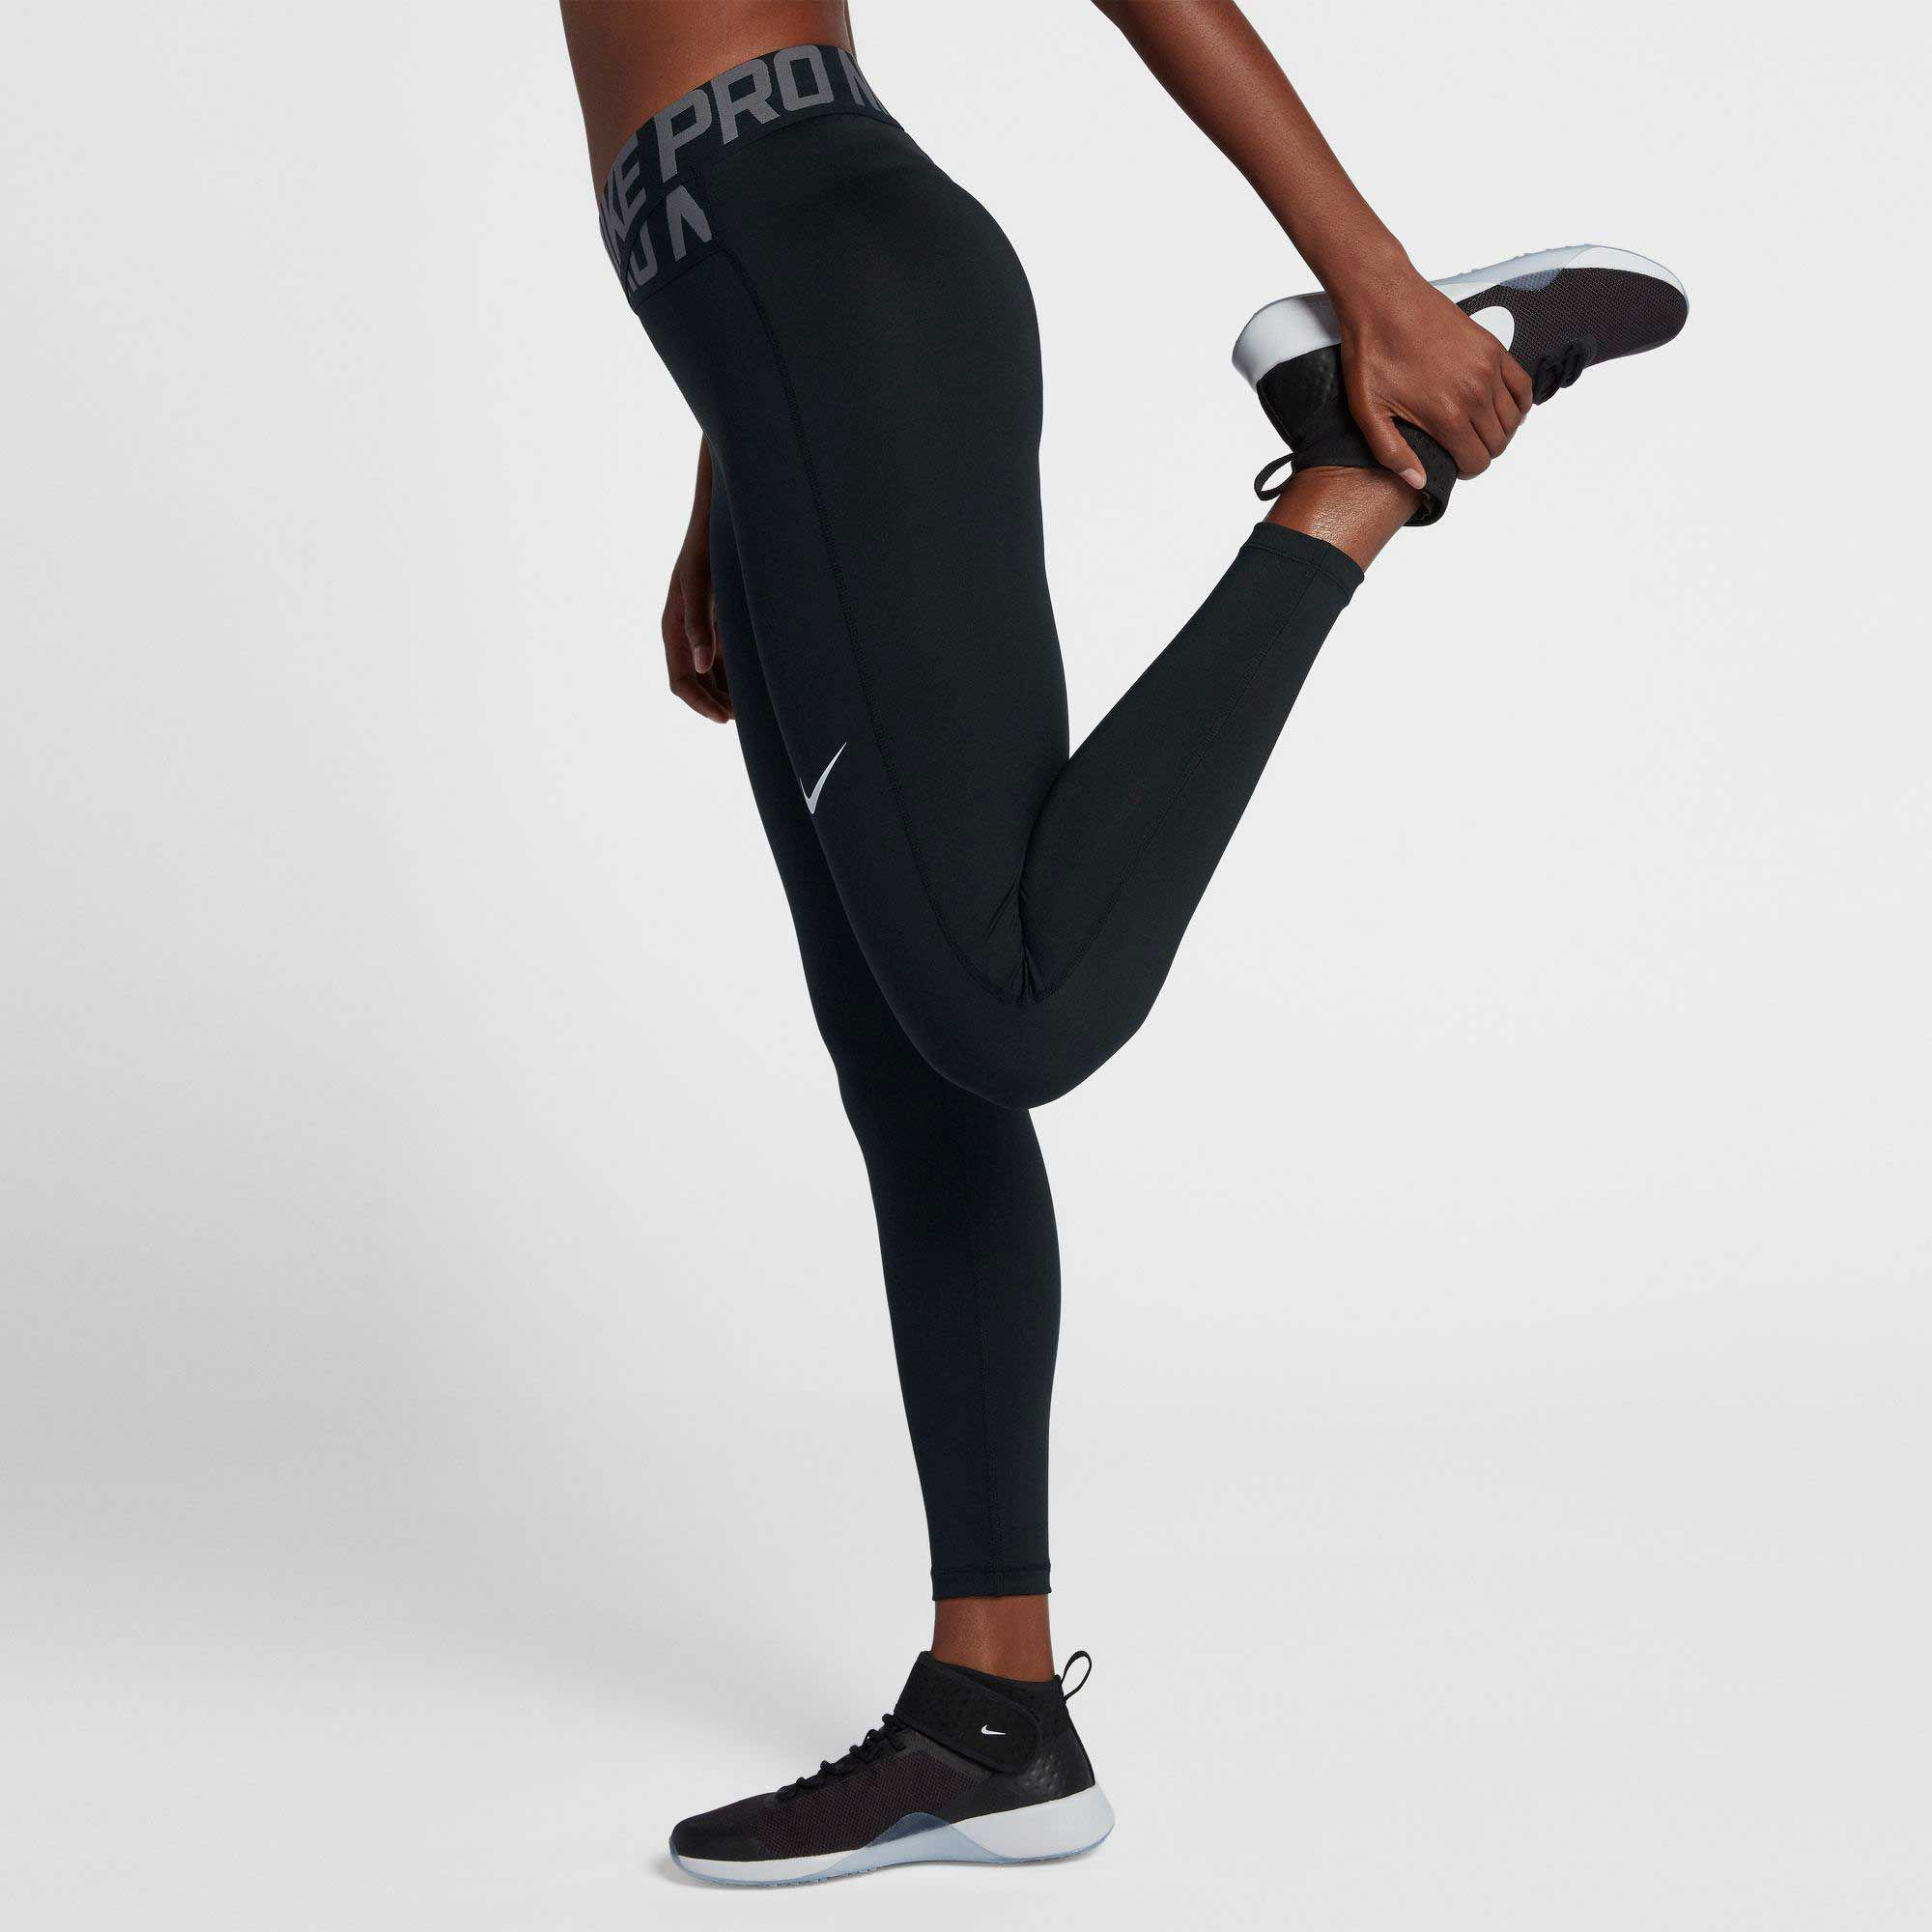 e703f53b9b79a2 Nike Pro Intertwist 7/8 Training Tights in Black - Lyst